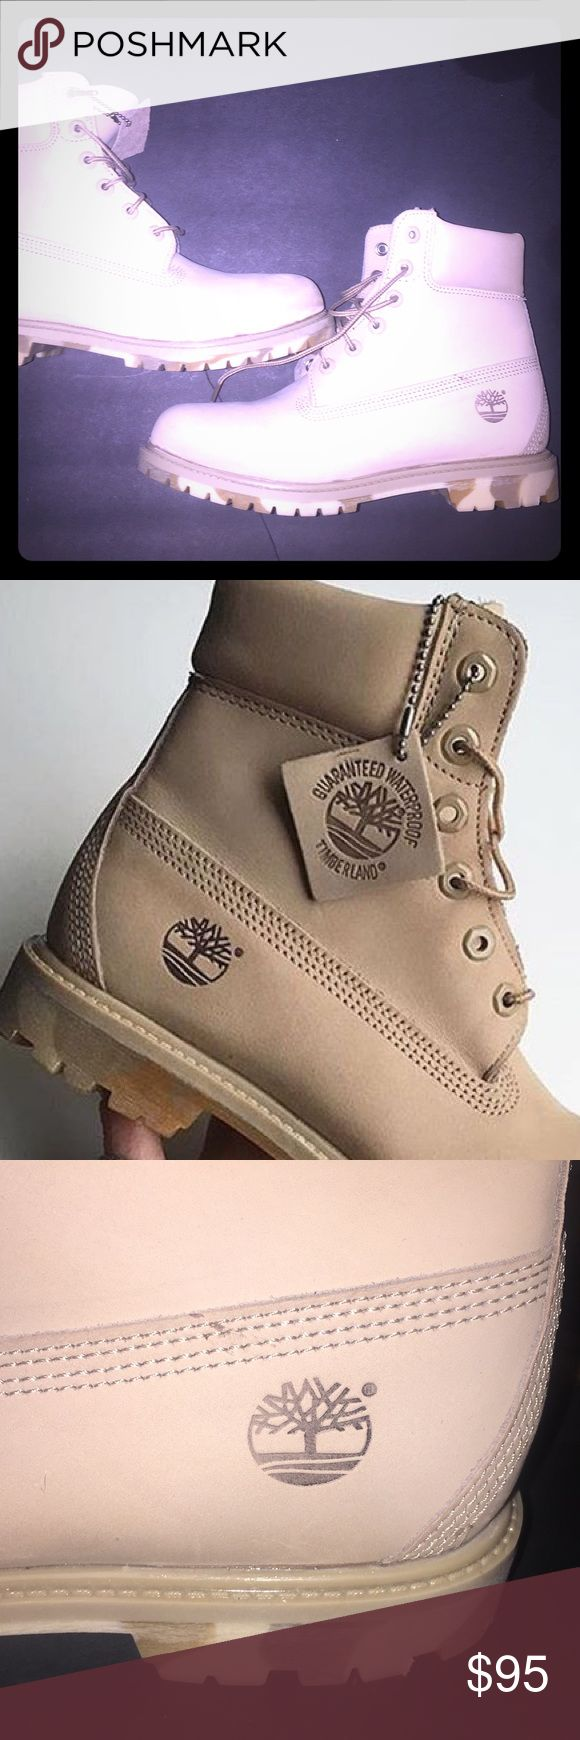 Women's timberlands very rare and different Gorgeous and Rare TIMBERLANDS these are so different they are a light tan/beige color with a very subtle camo heel.. these are brand spankin new never worn !!! For some reason  I threw away the box when I got them probably trying to hide them from my husband 😜 Timberland Shoes Ankle Boots & Booties